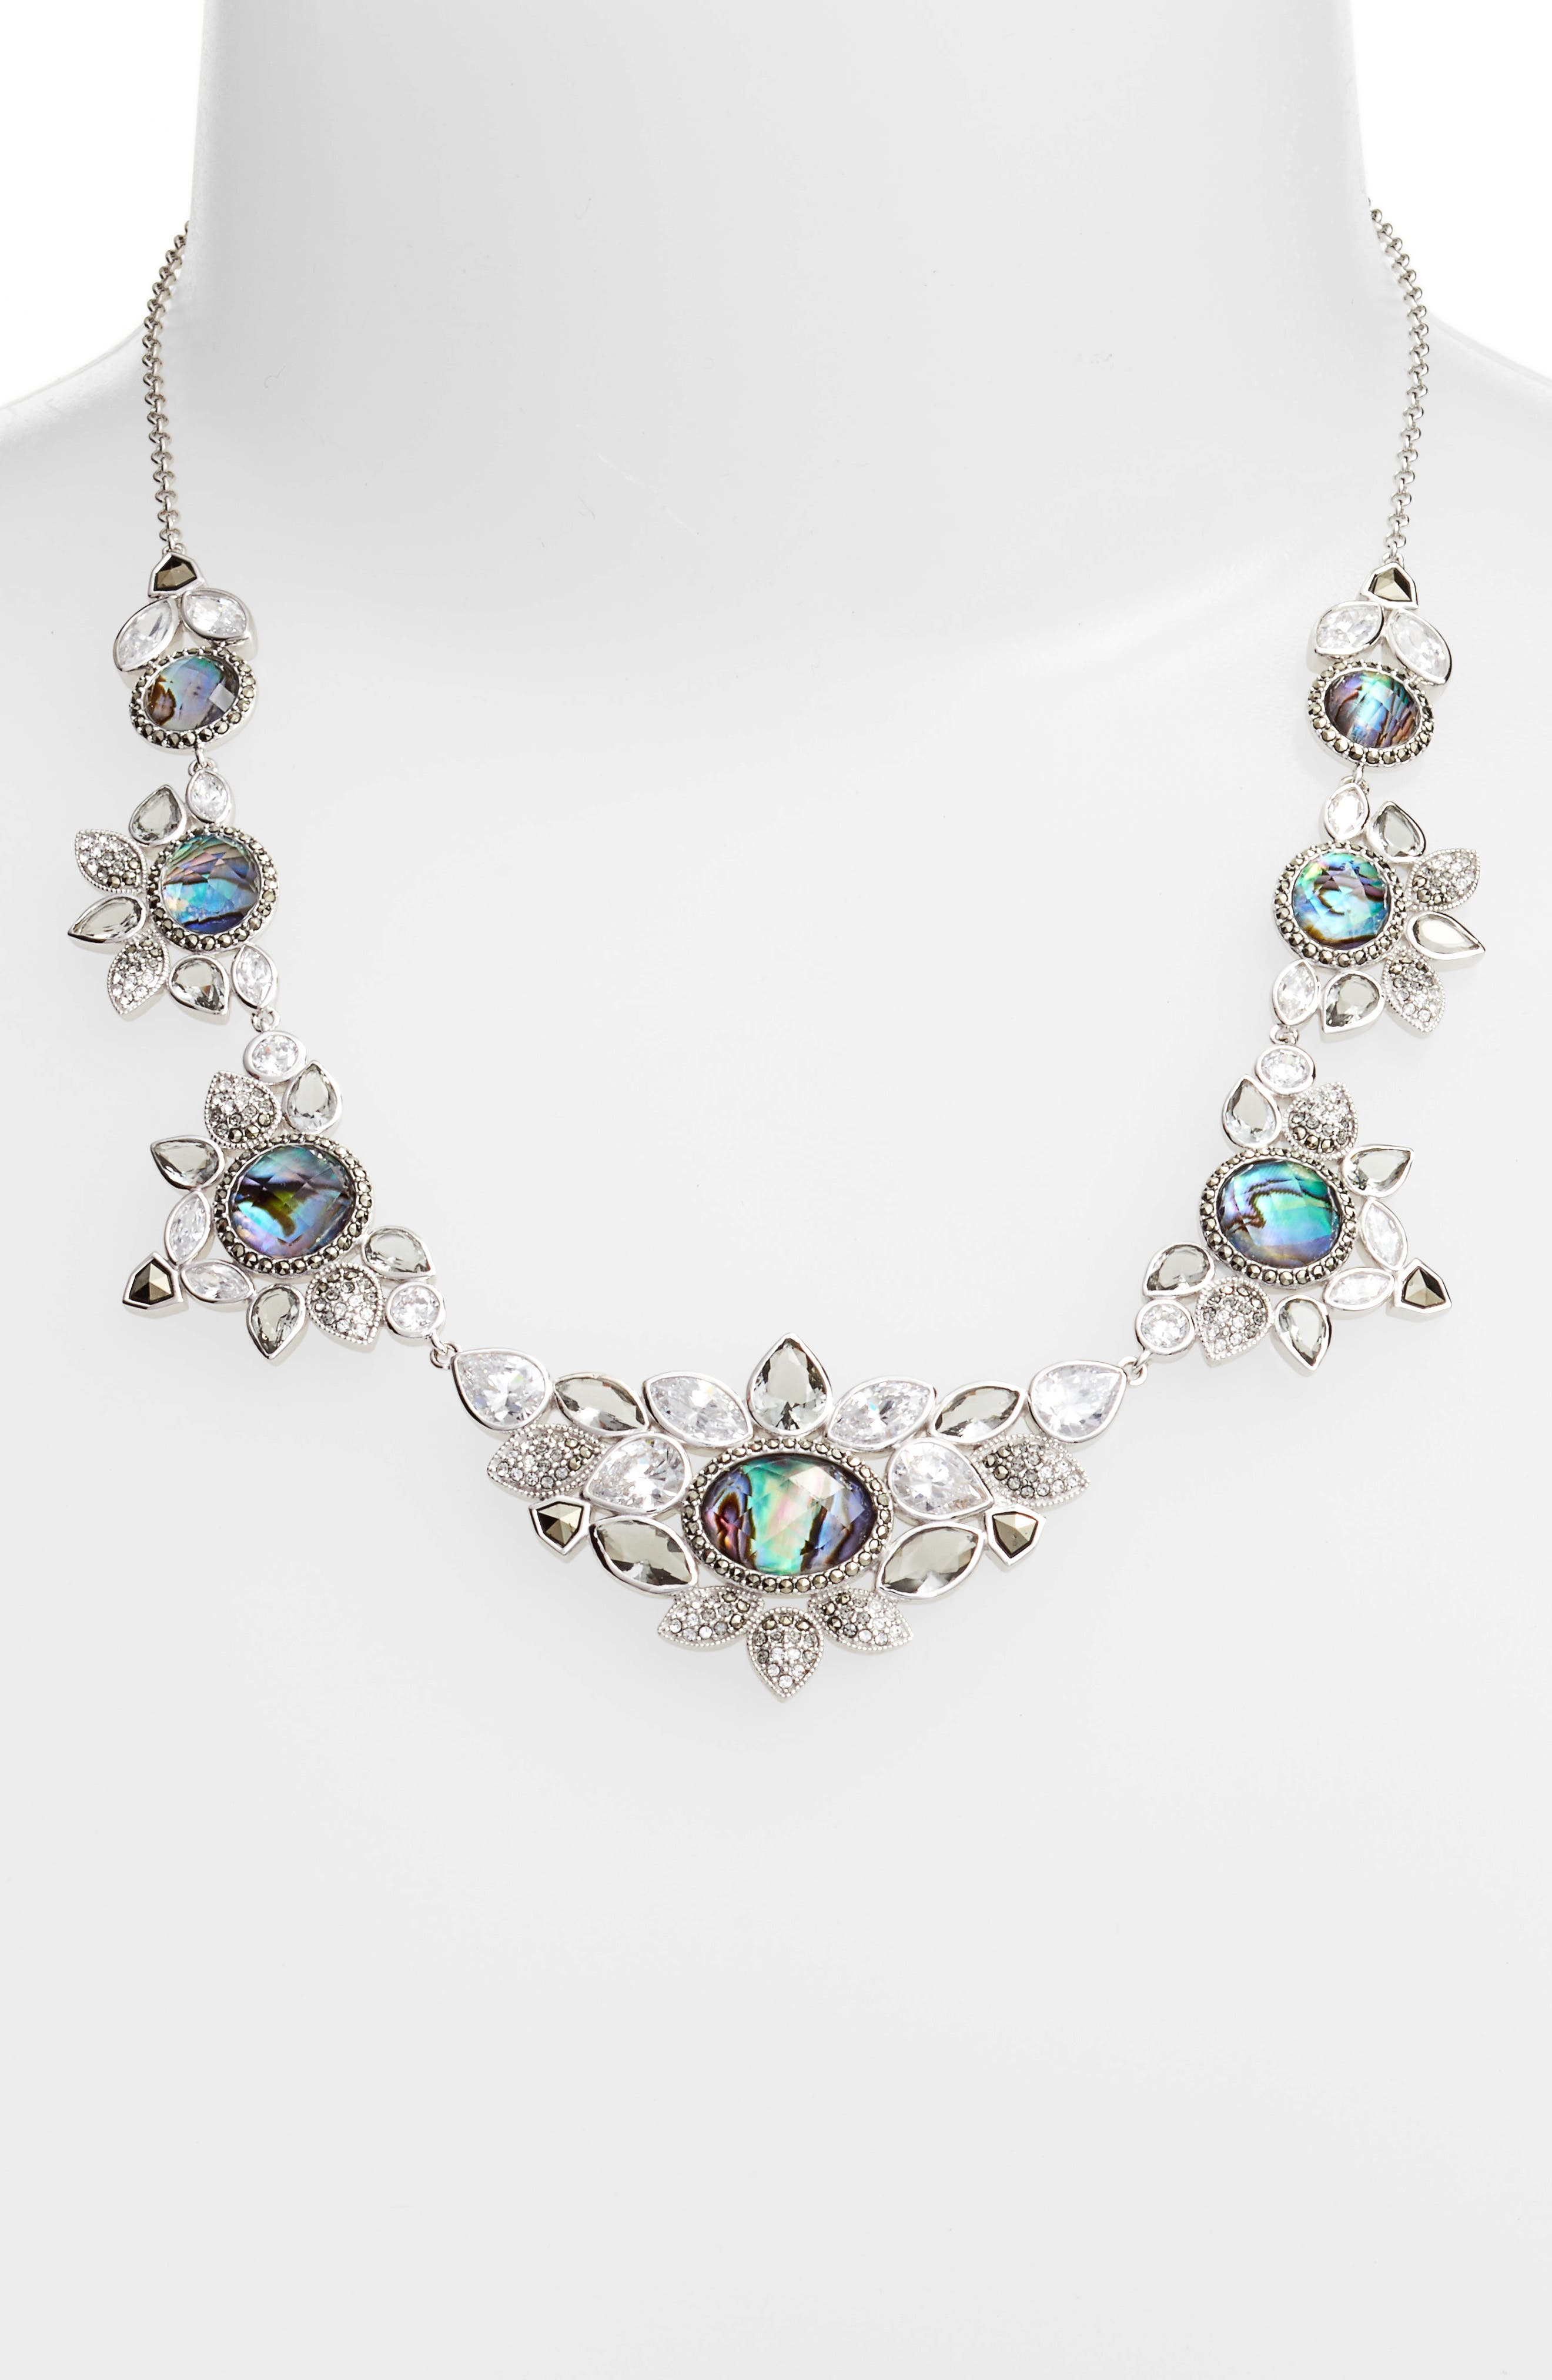 Main Image - Judith Jack Crystal Collar Necklace